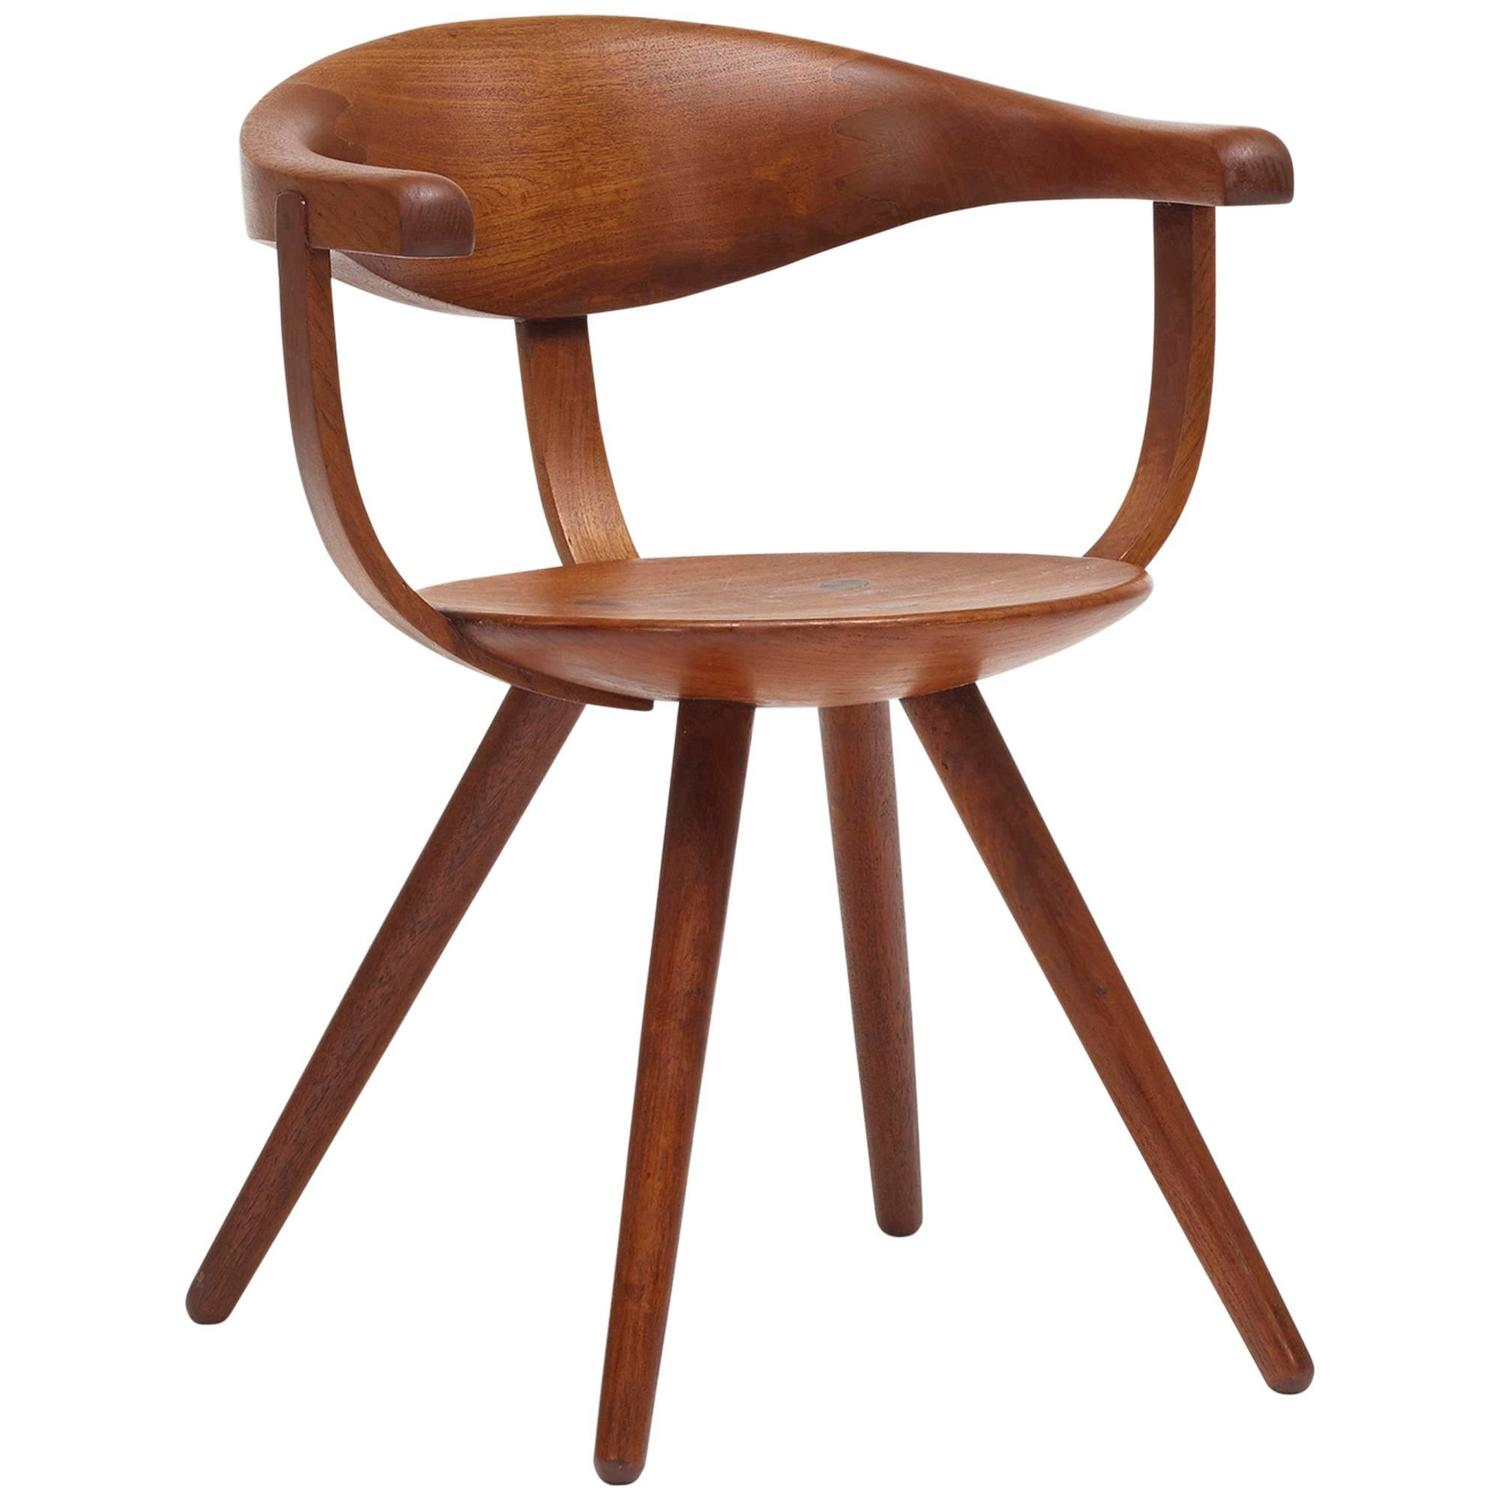 Butterfly chair sori yanagi - Butterfly Chair Sori Yanagi 12